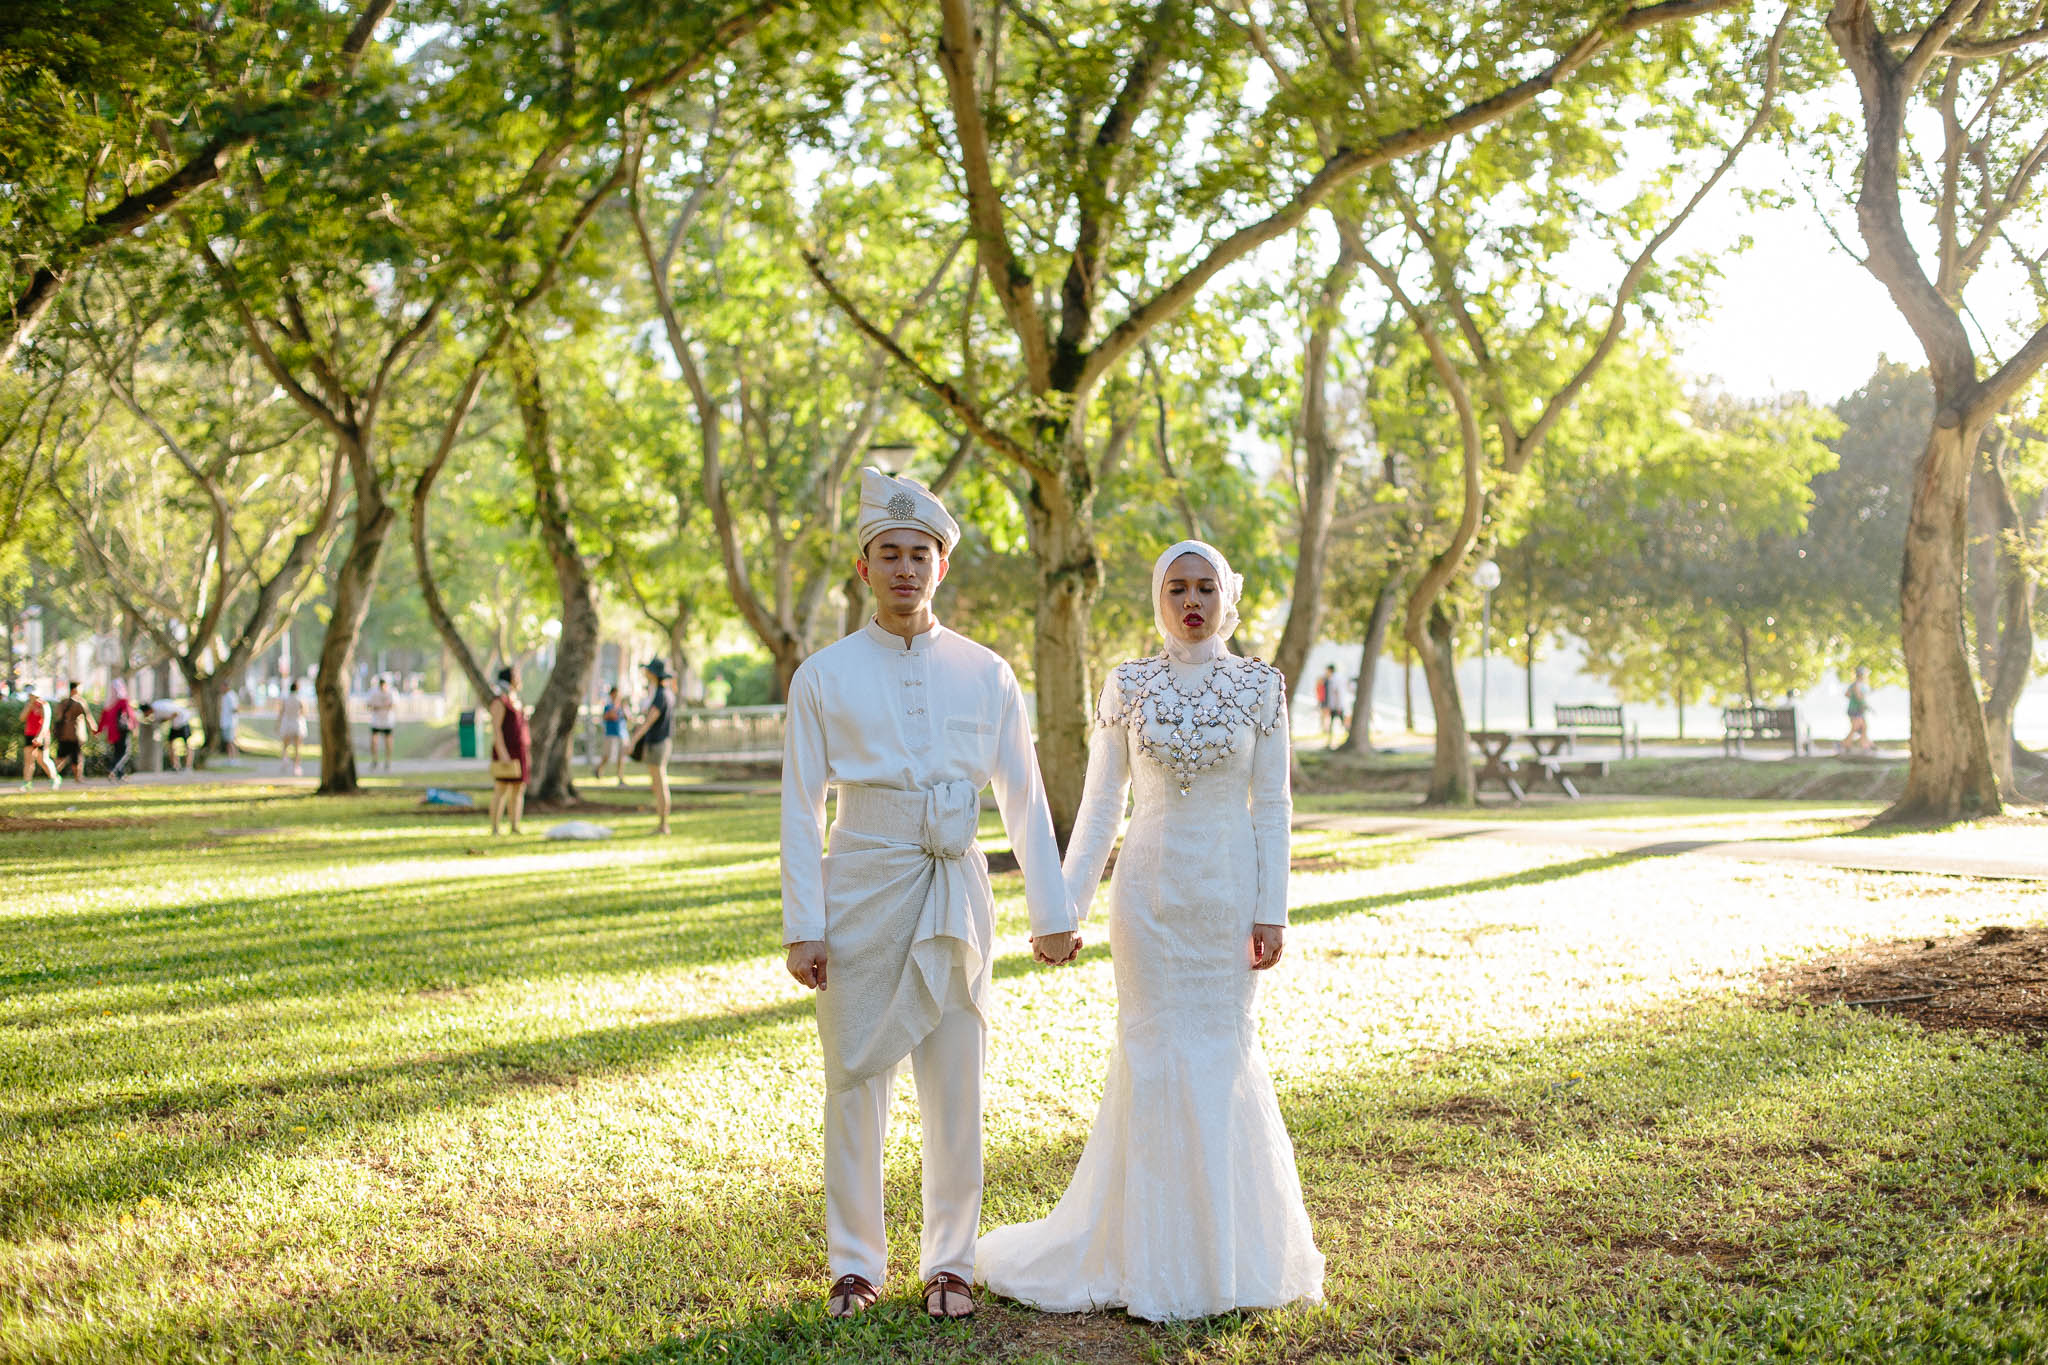 singapore-wedding-photographer-mega-asyraf-39.jpg